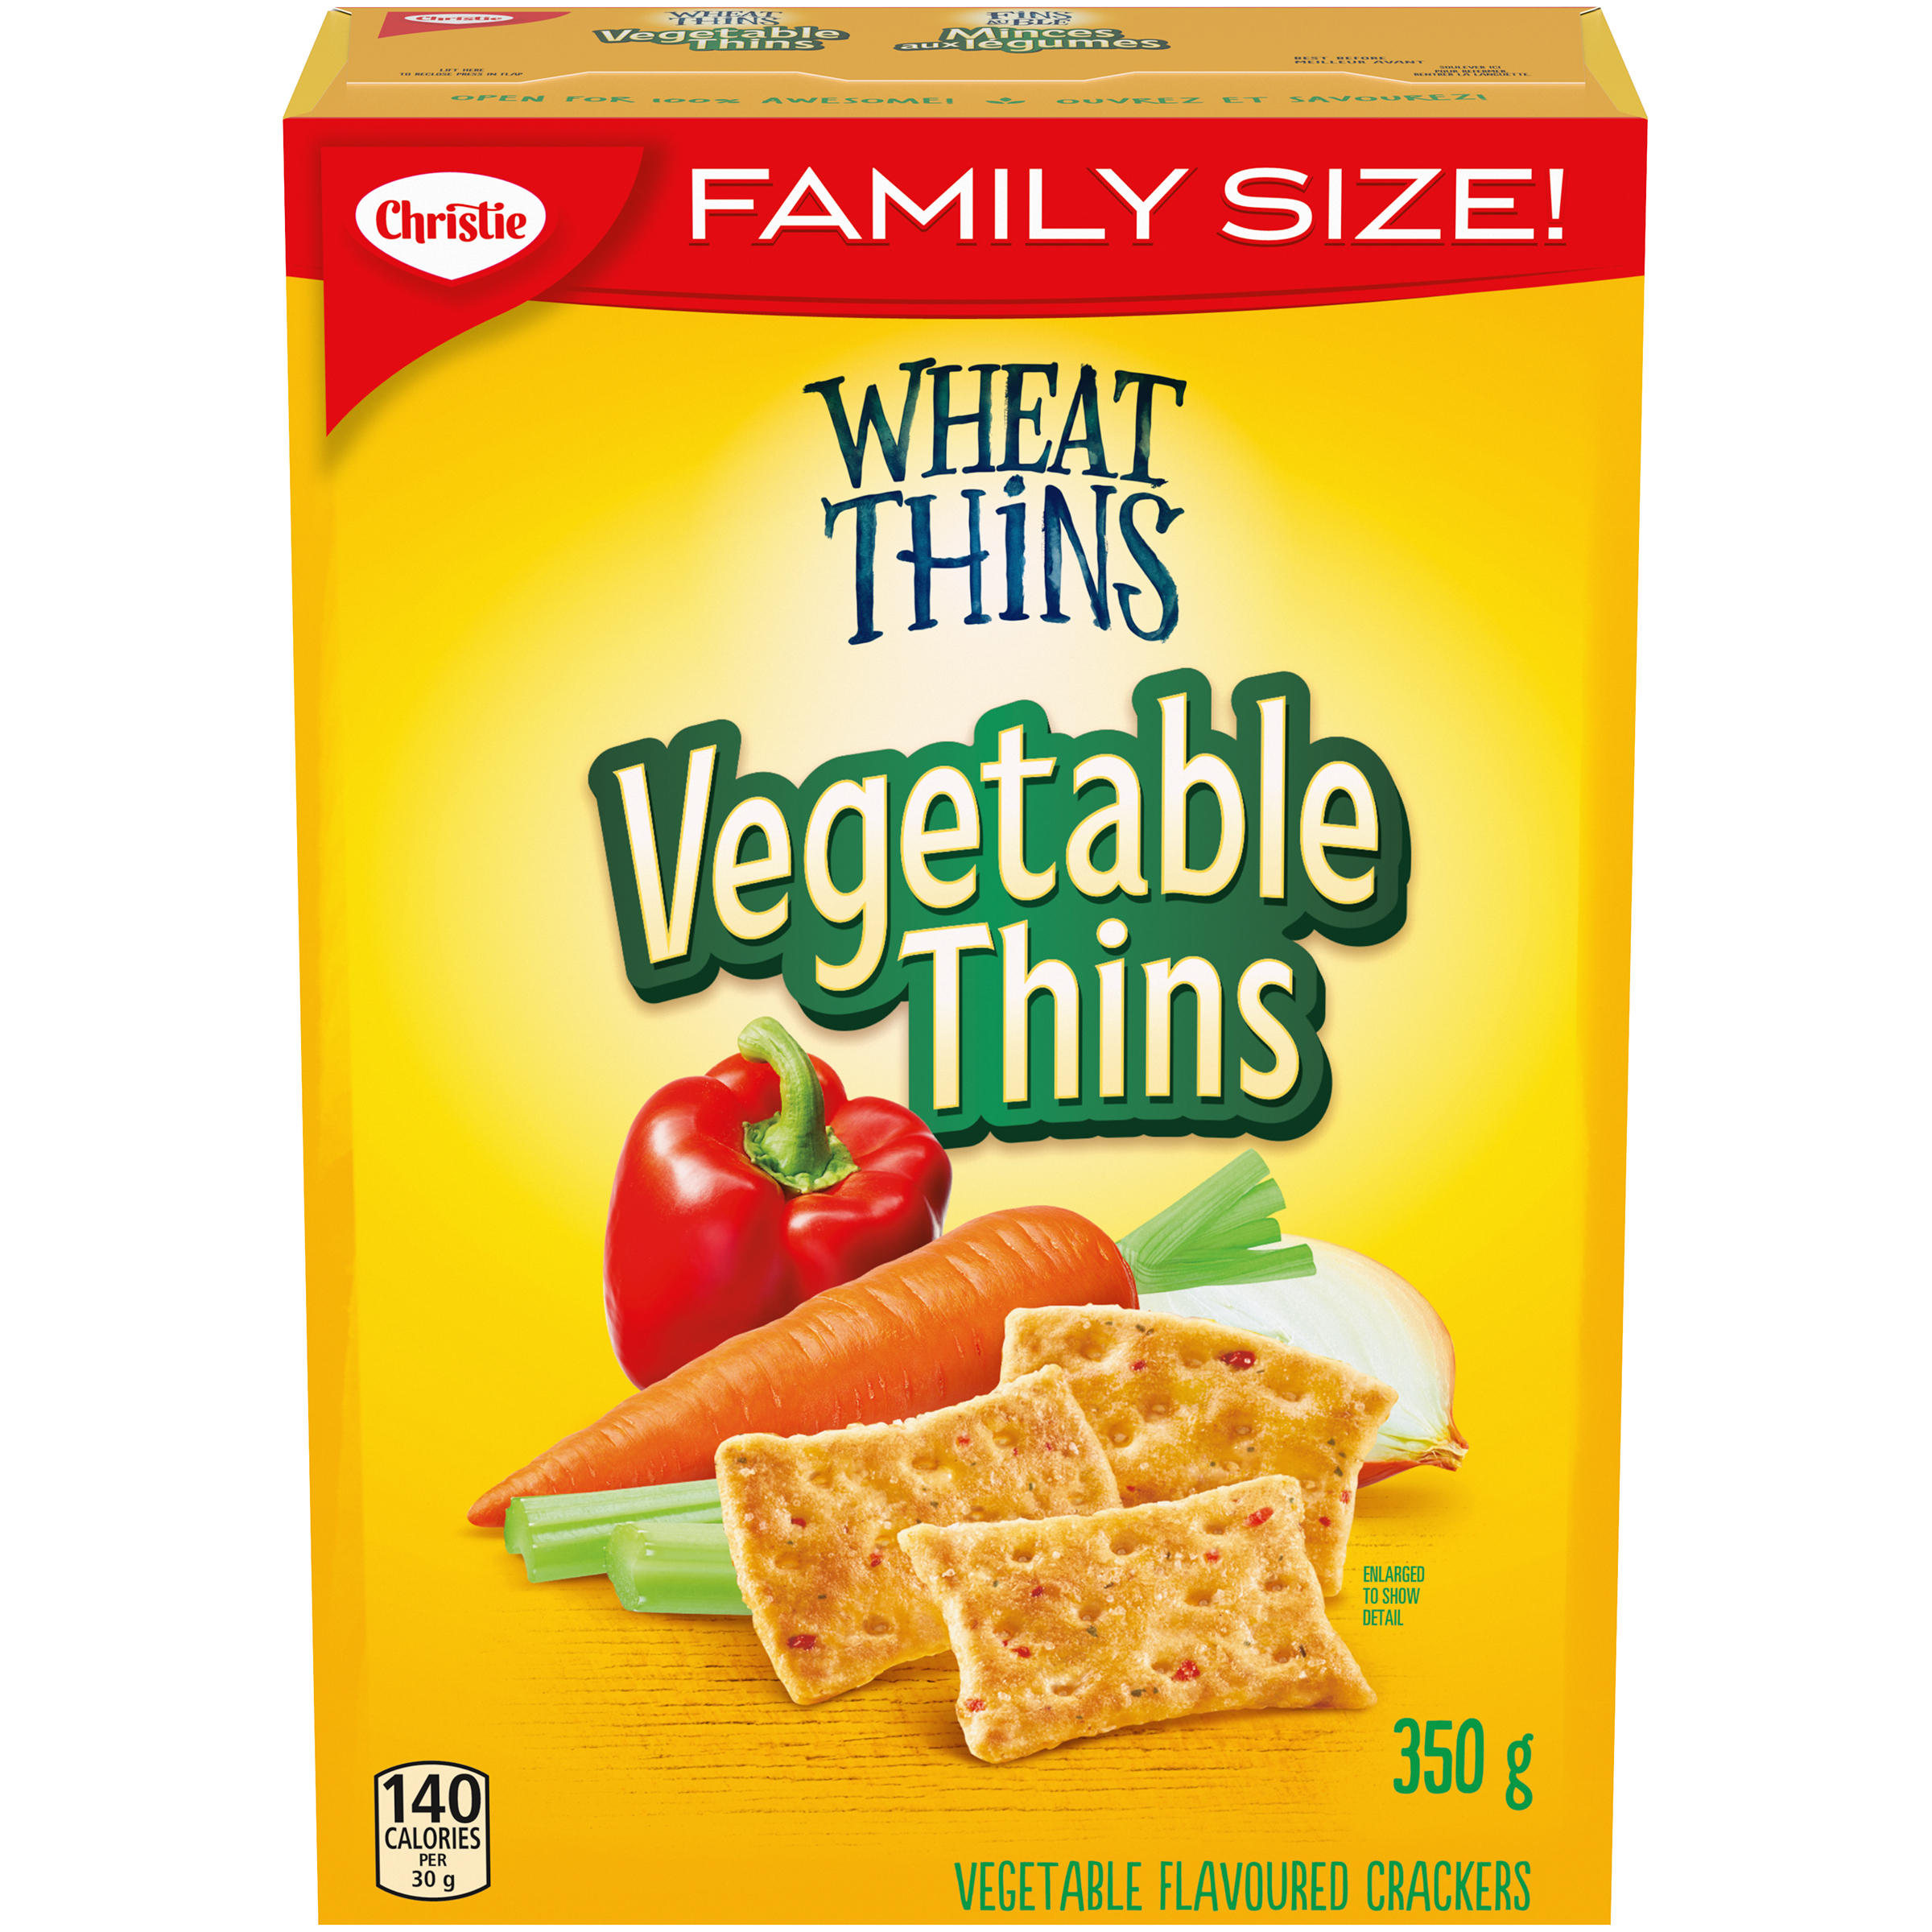 Wheat Thins Vegetable Thins Crackers 350 G